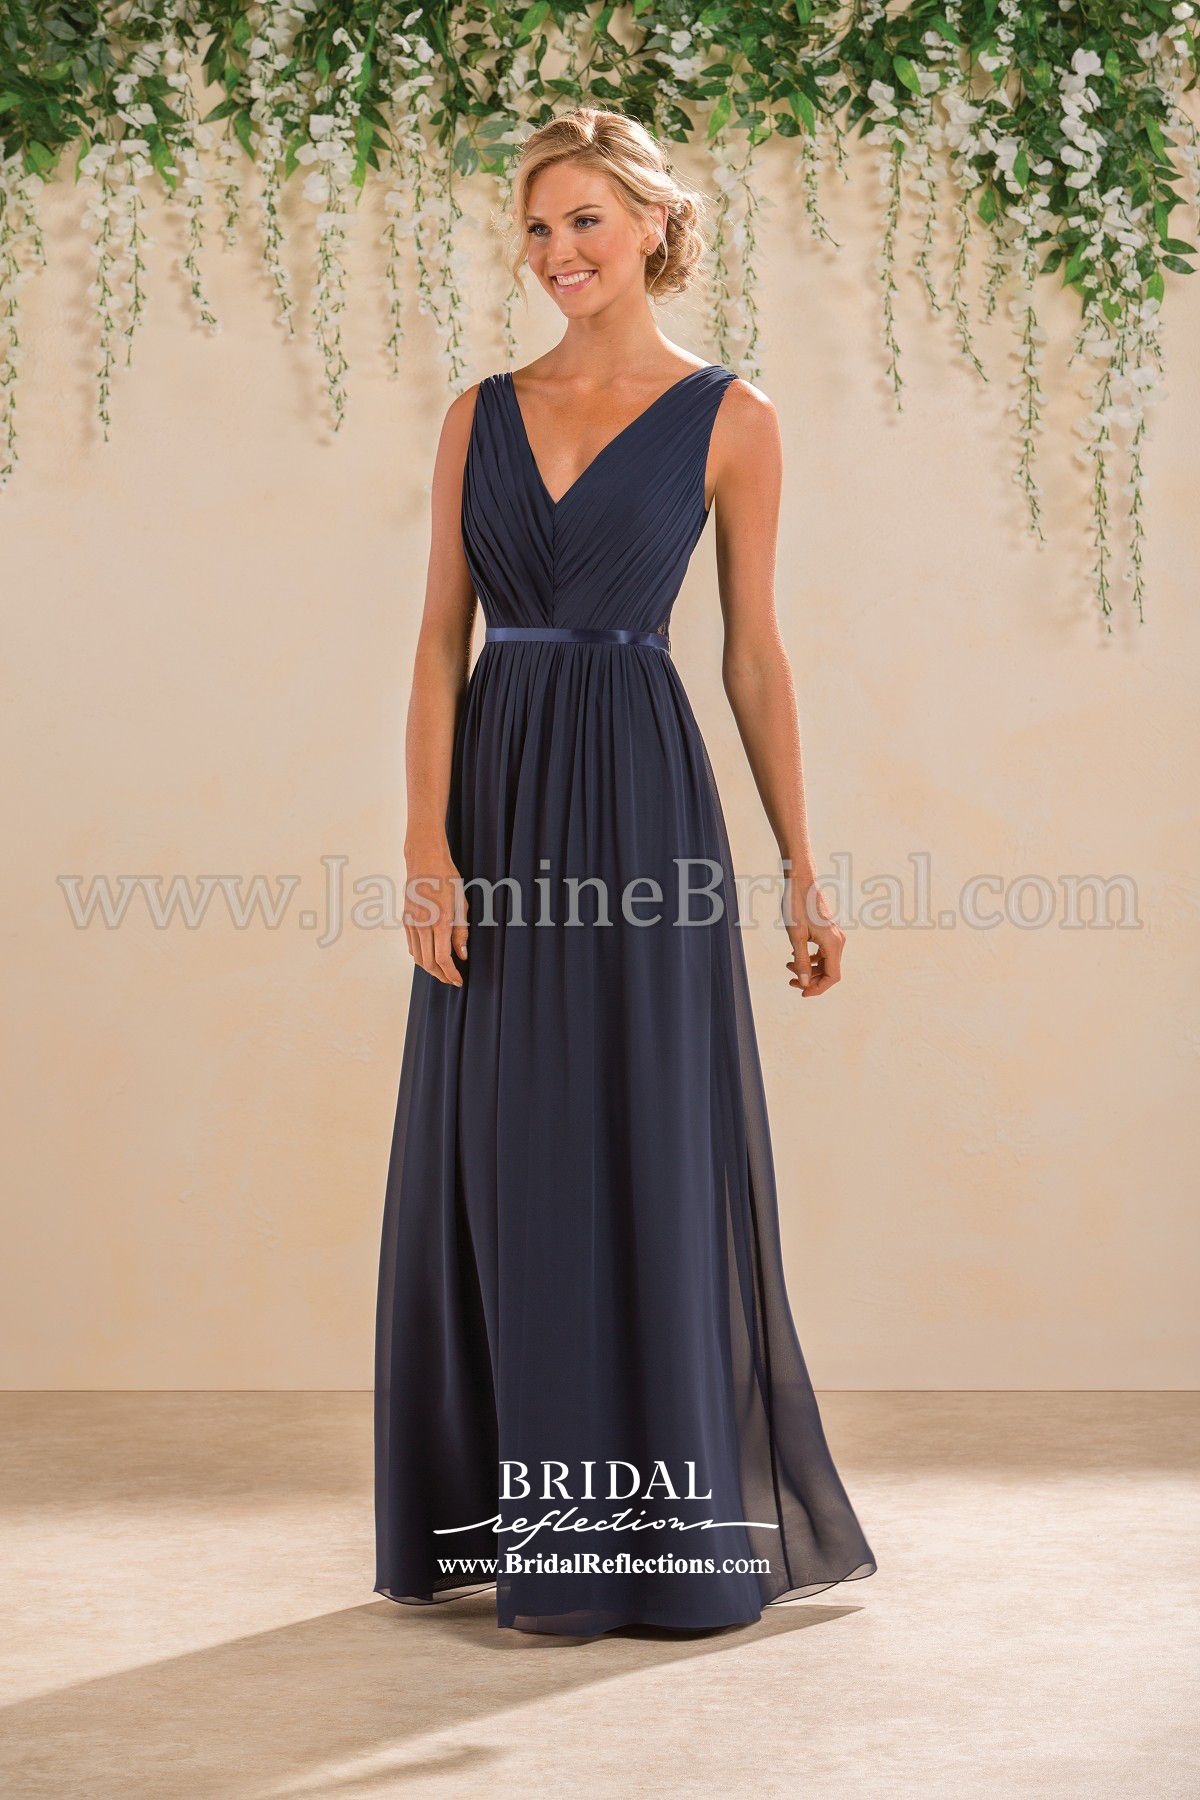 Shop the b2 by jasmine bridesmaid dress collection providing shop the b2 by jasmine bridesmaid dress collection providing bridesmaids with the ultimate in fashion ombrellifo Images